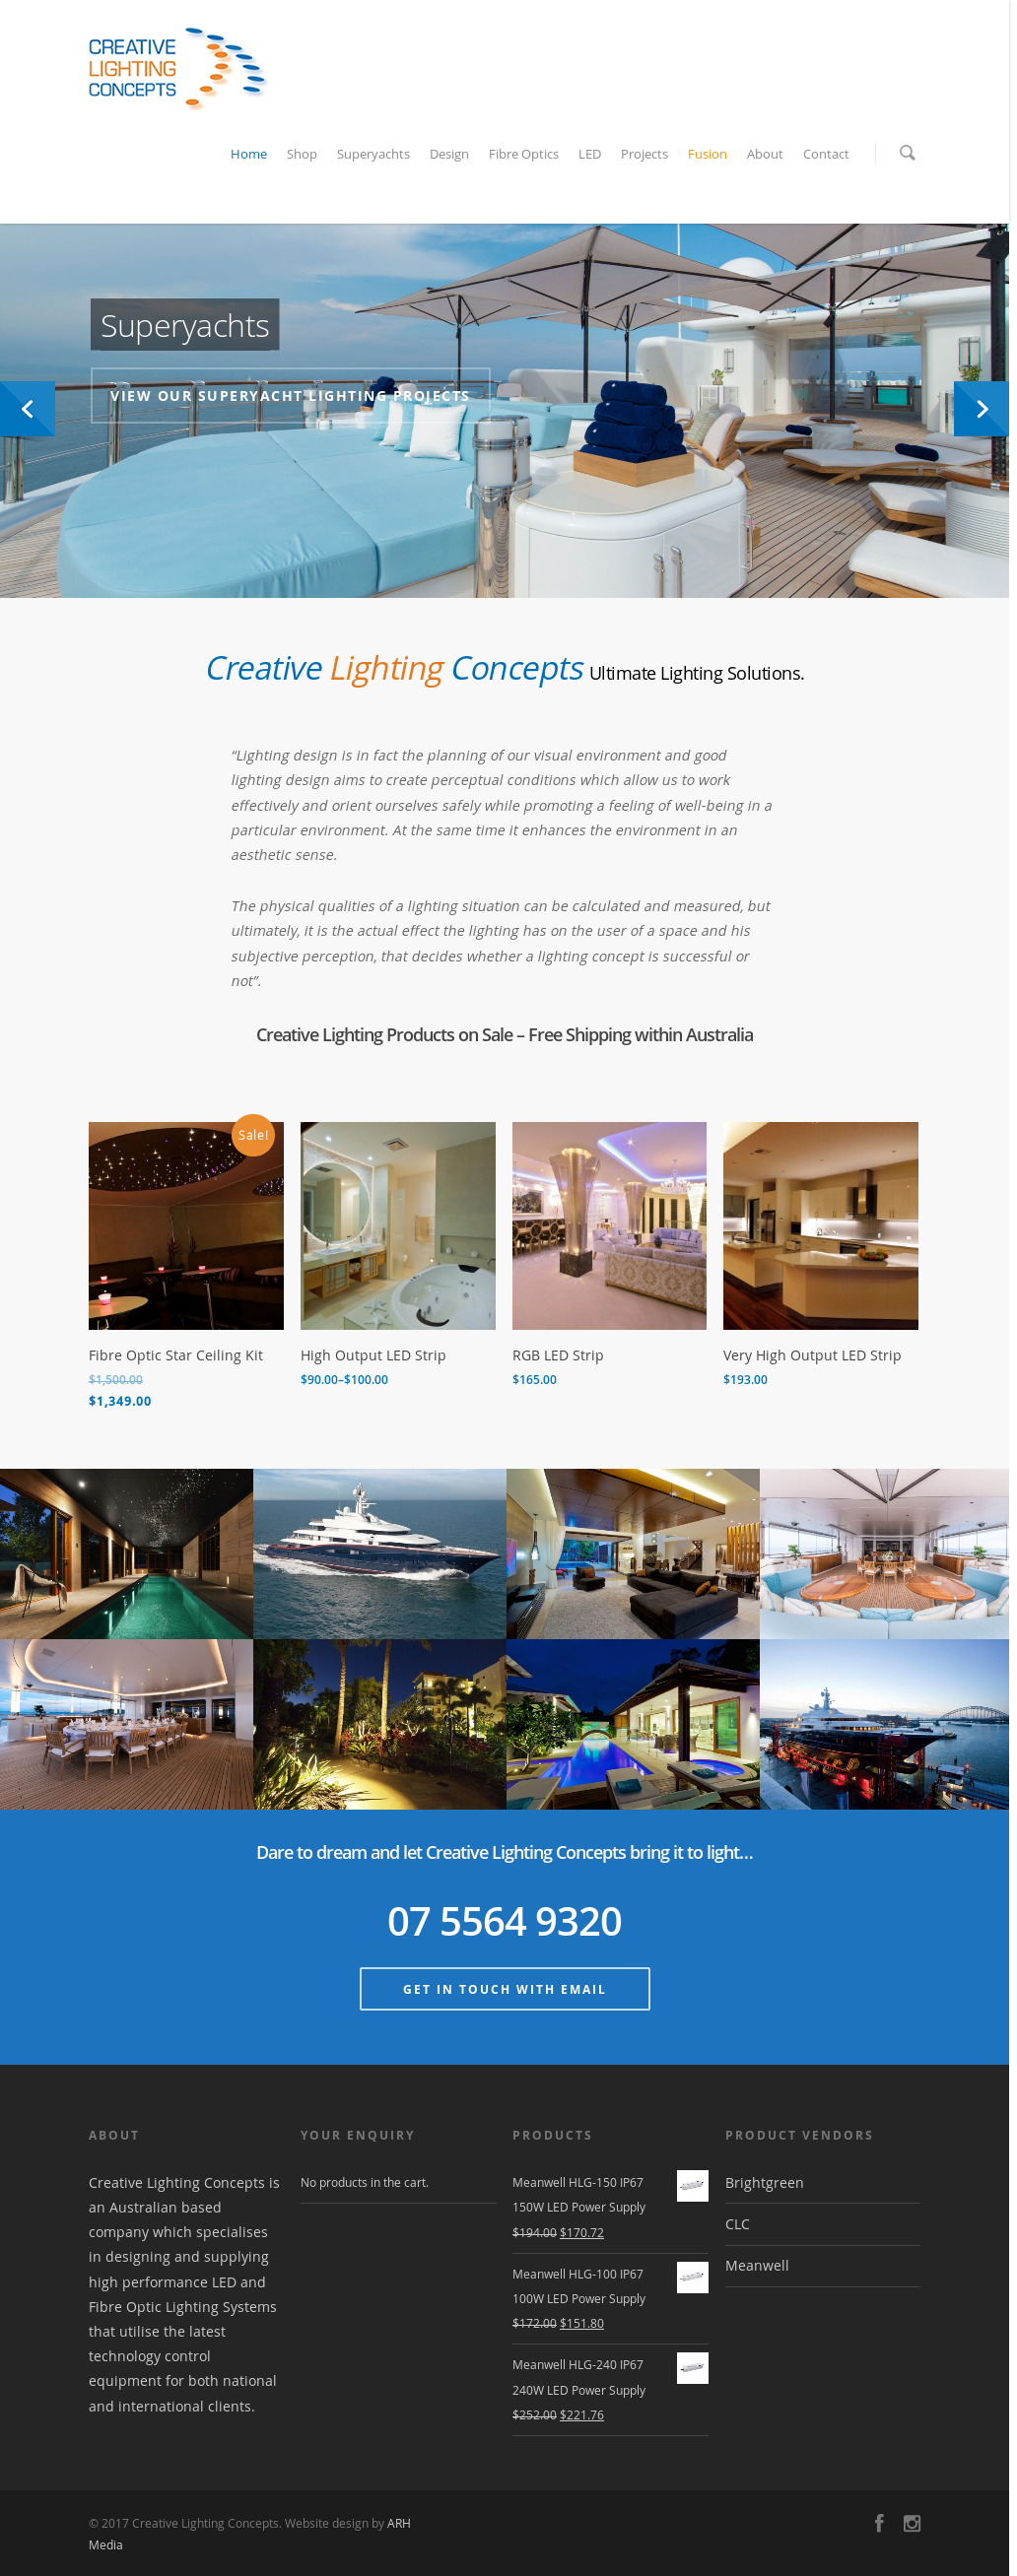 creative lighting concepts creative lighting conceptss website screenshot on jul 2017 concepts competitors revenue and employees